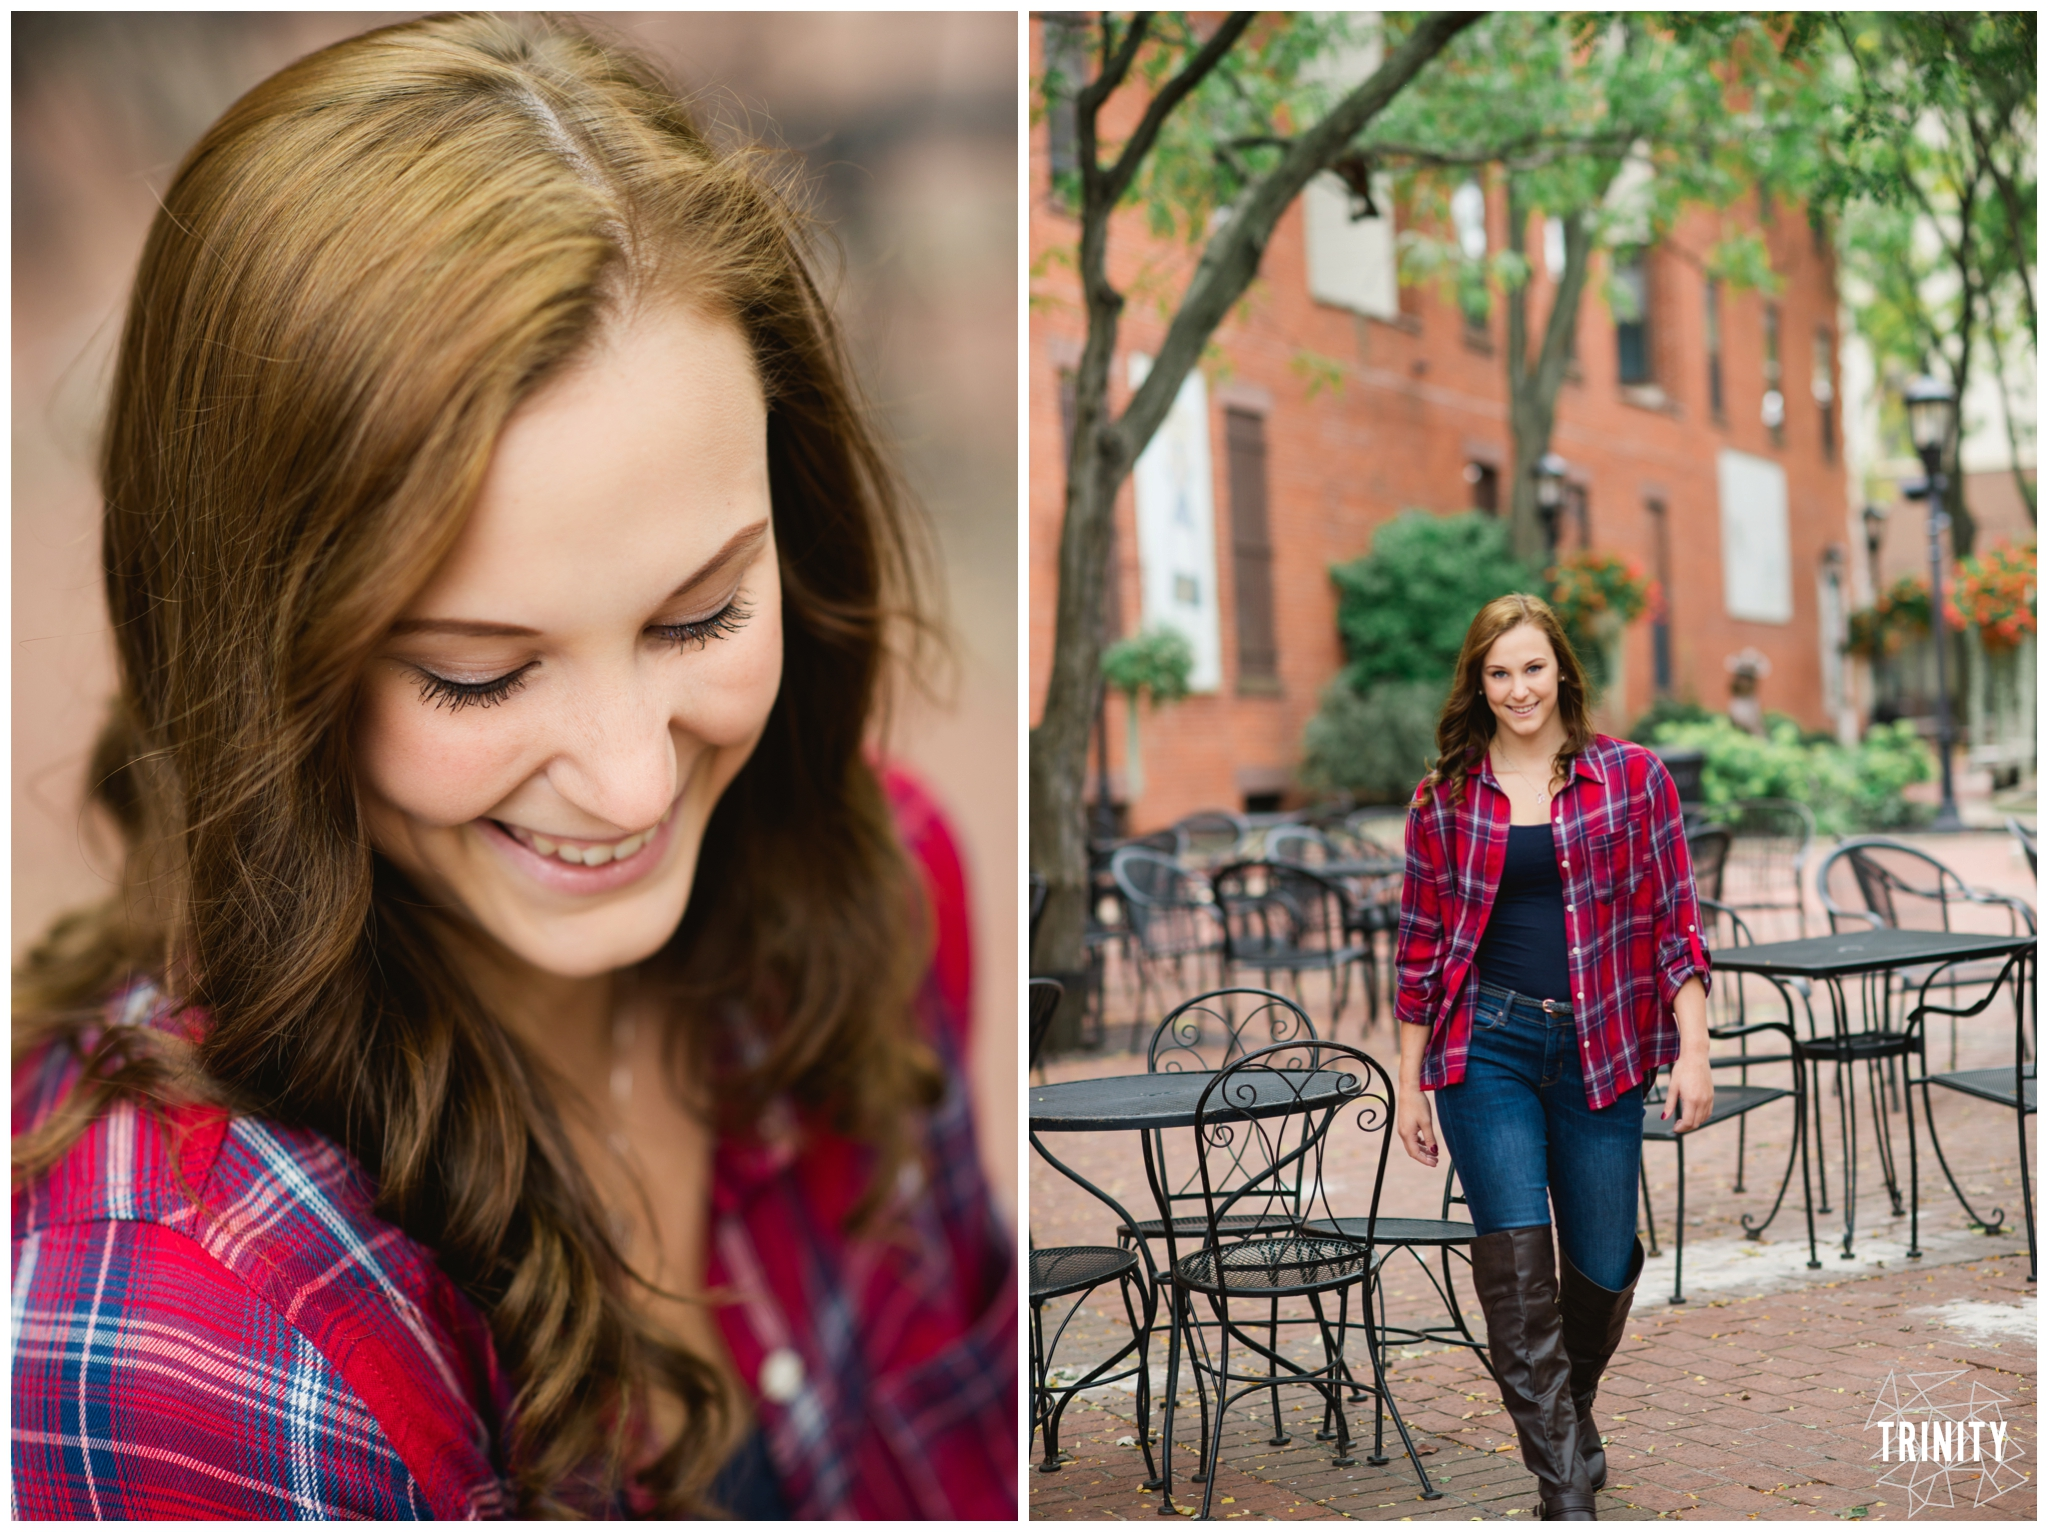 YORK PA SENIOR PORTRAIT PHOTOGRAPHERS